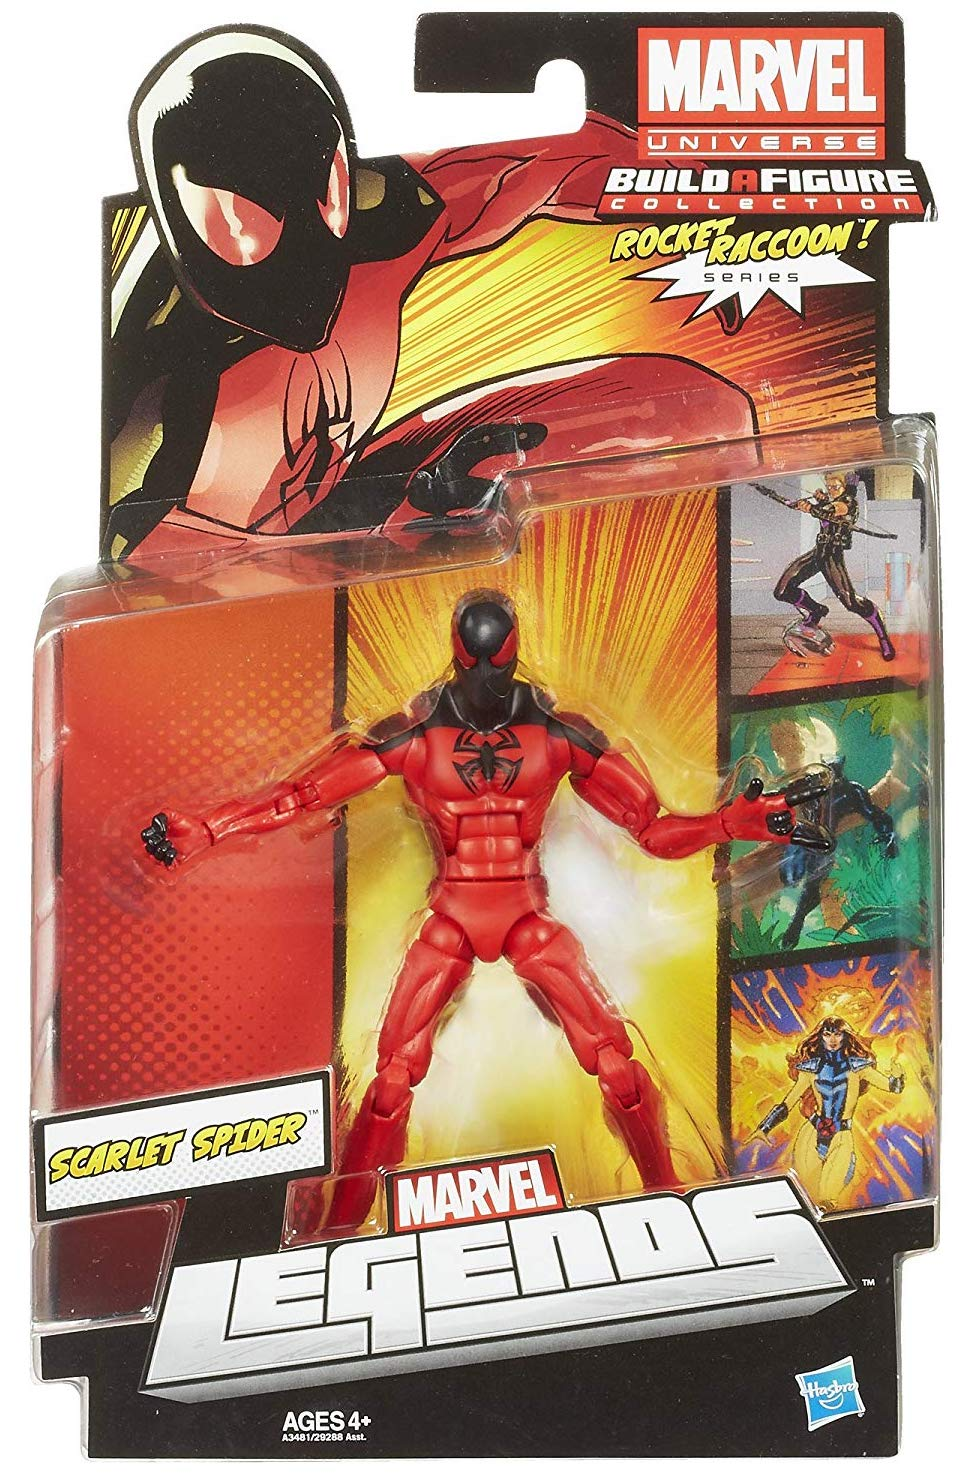 Marvel Legends Rocket Raccoon Series Scarlet Spider